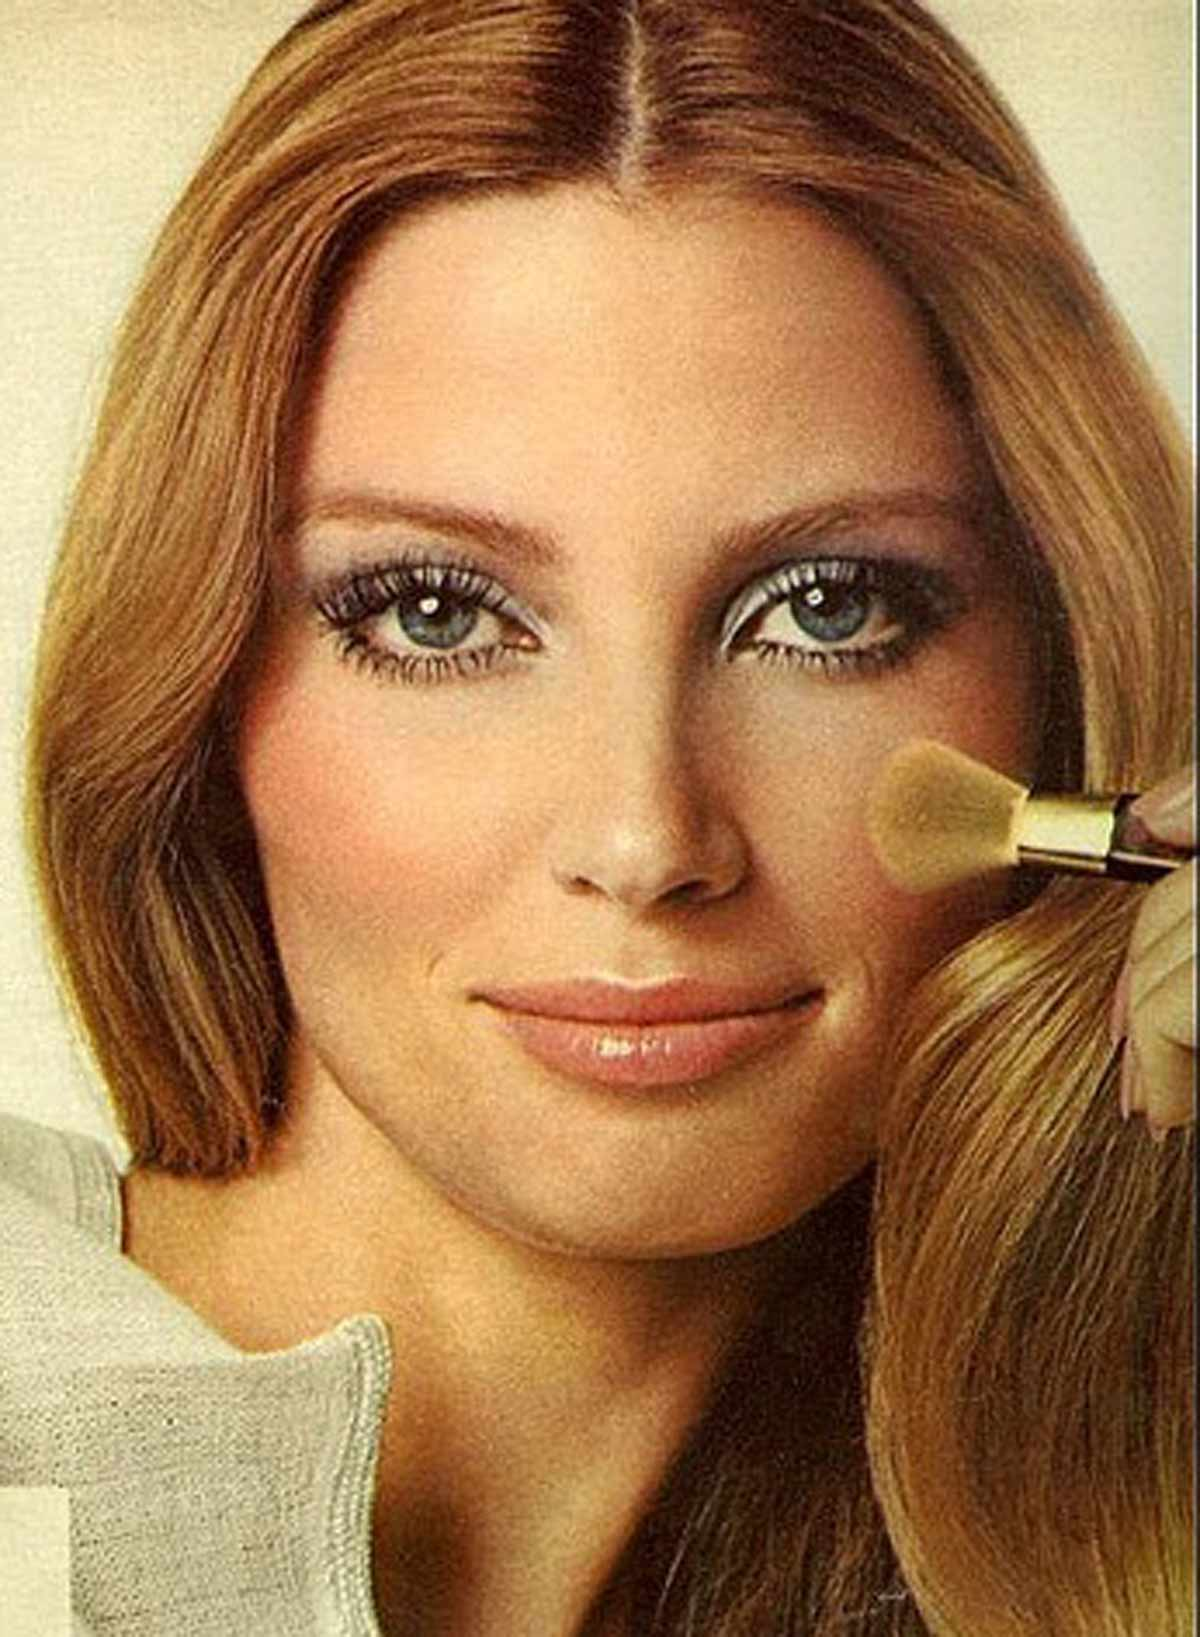 Make Up Fashion And 50 Shades Of Pink: The 1970s Makeup Look - 5 Key Points